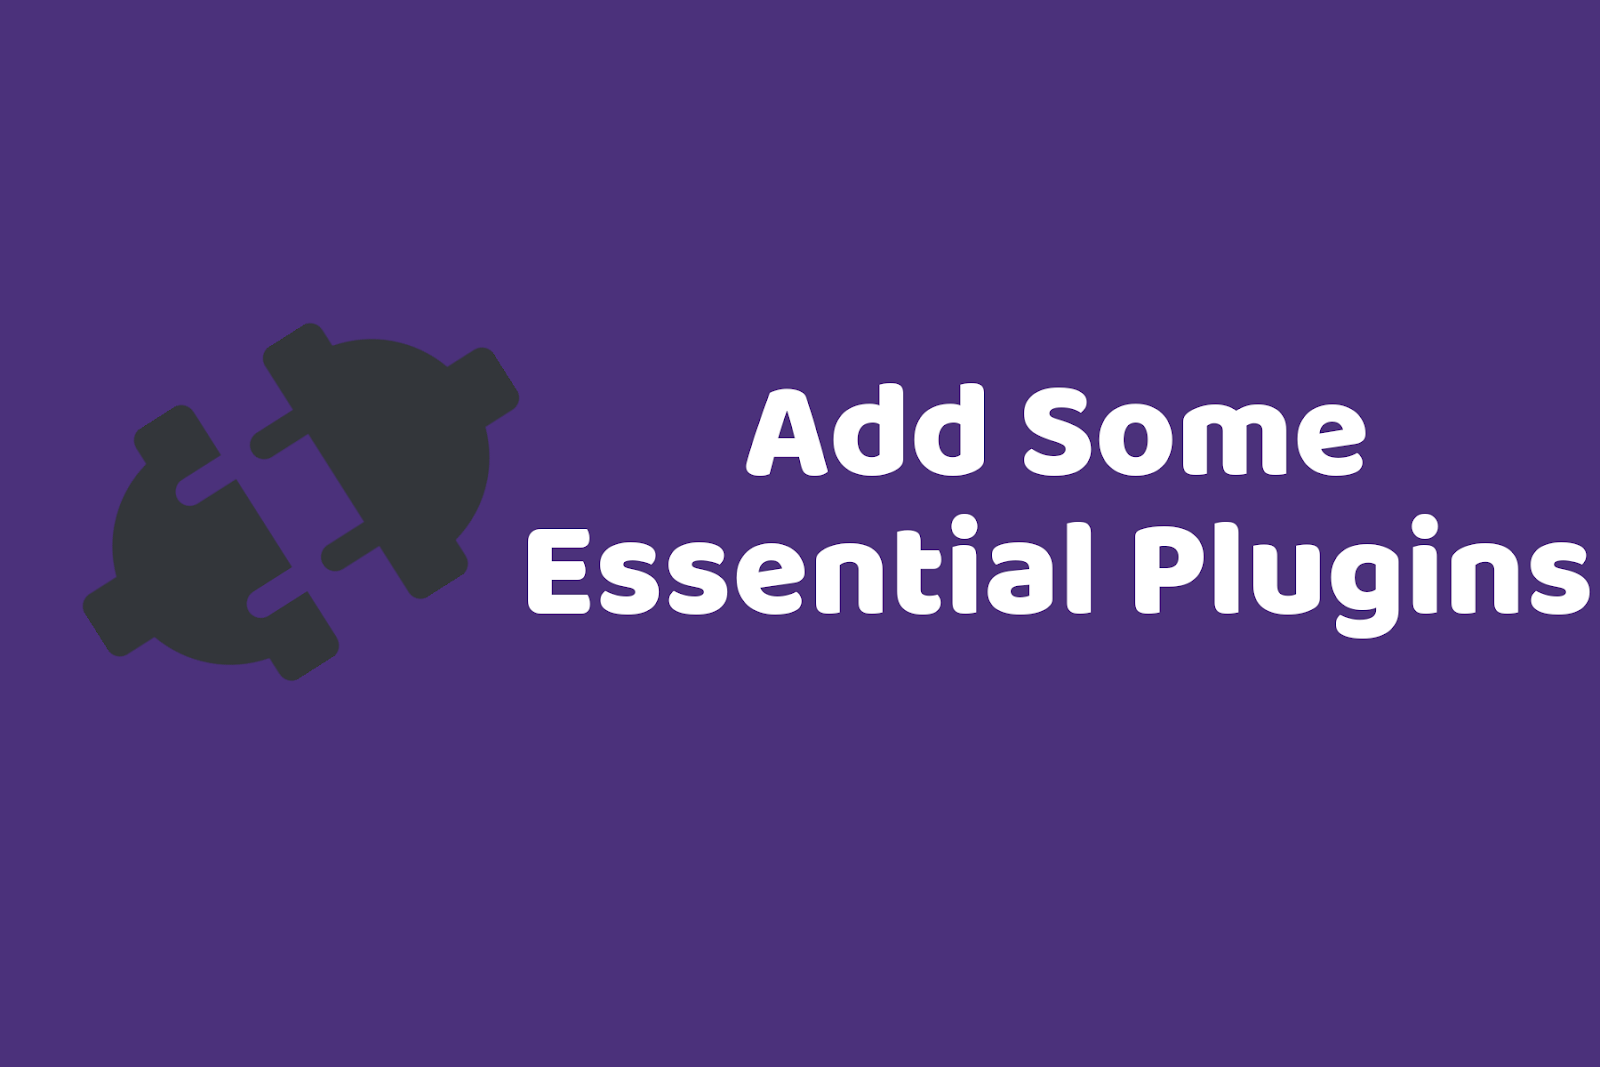 Add essential plugins